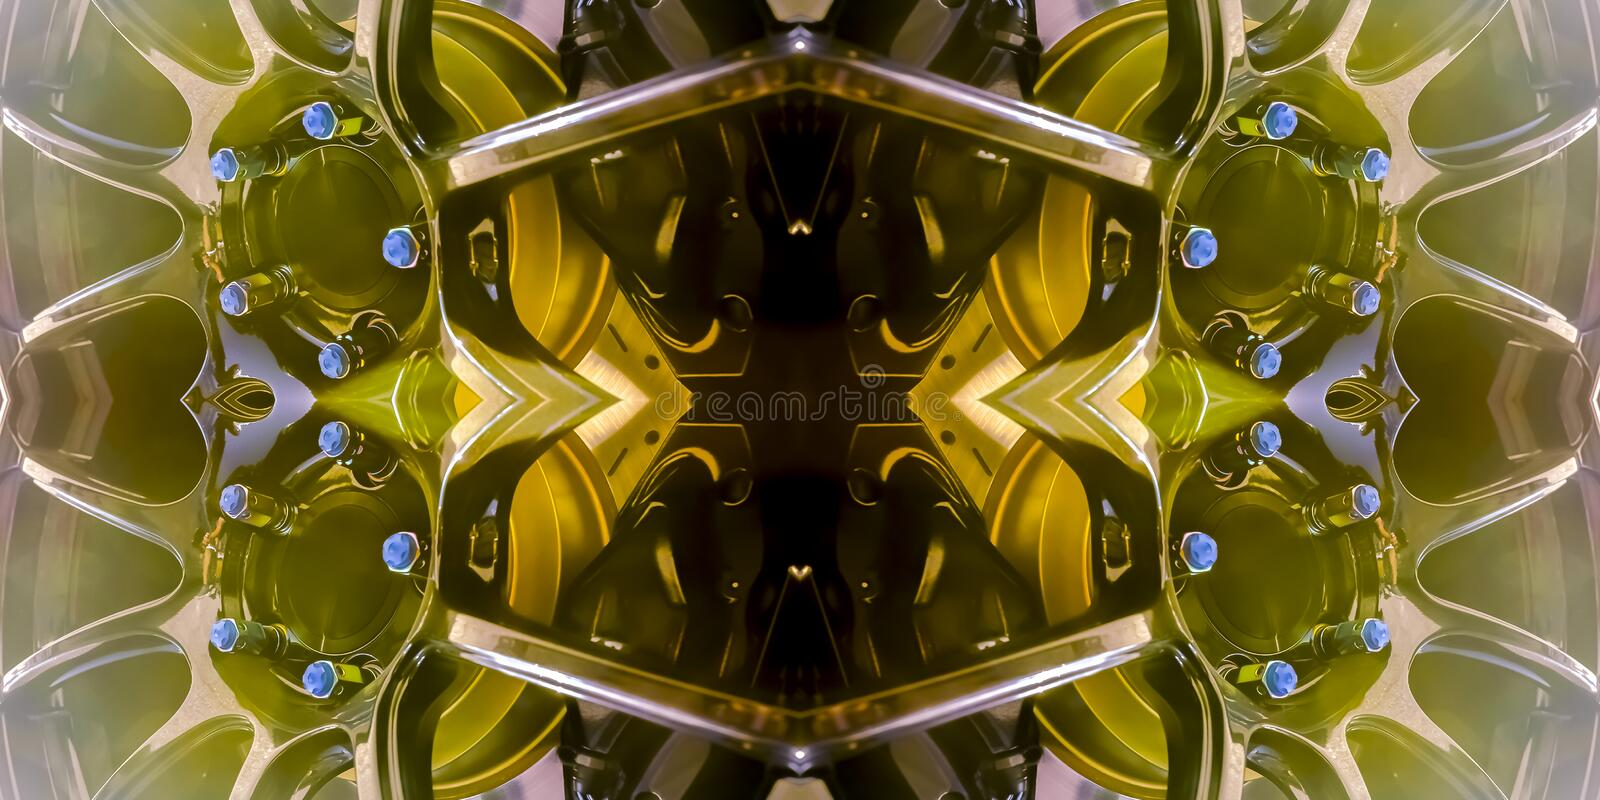 Golden rims of sports car reflected in corners. Geometric kaleidoscope pattern on mirrored axis of symmetry reflection. Colorful shapes as a wallpaper for royalty free illustration